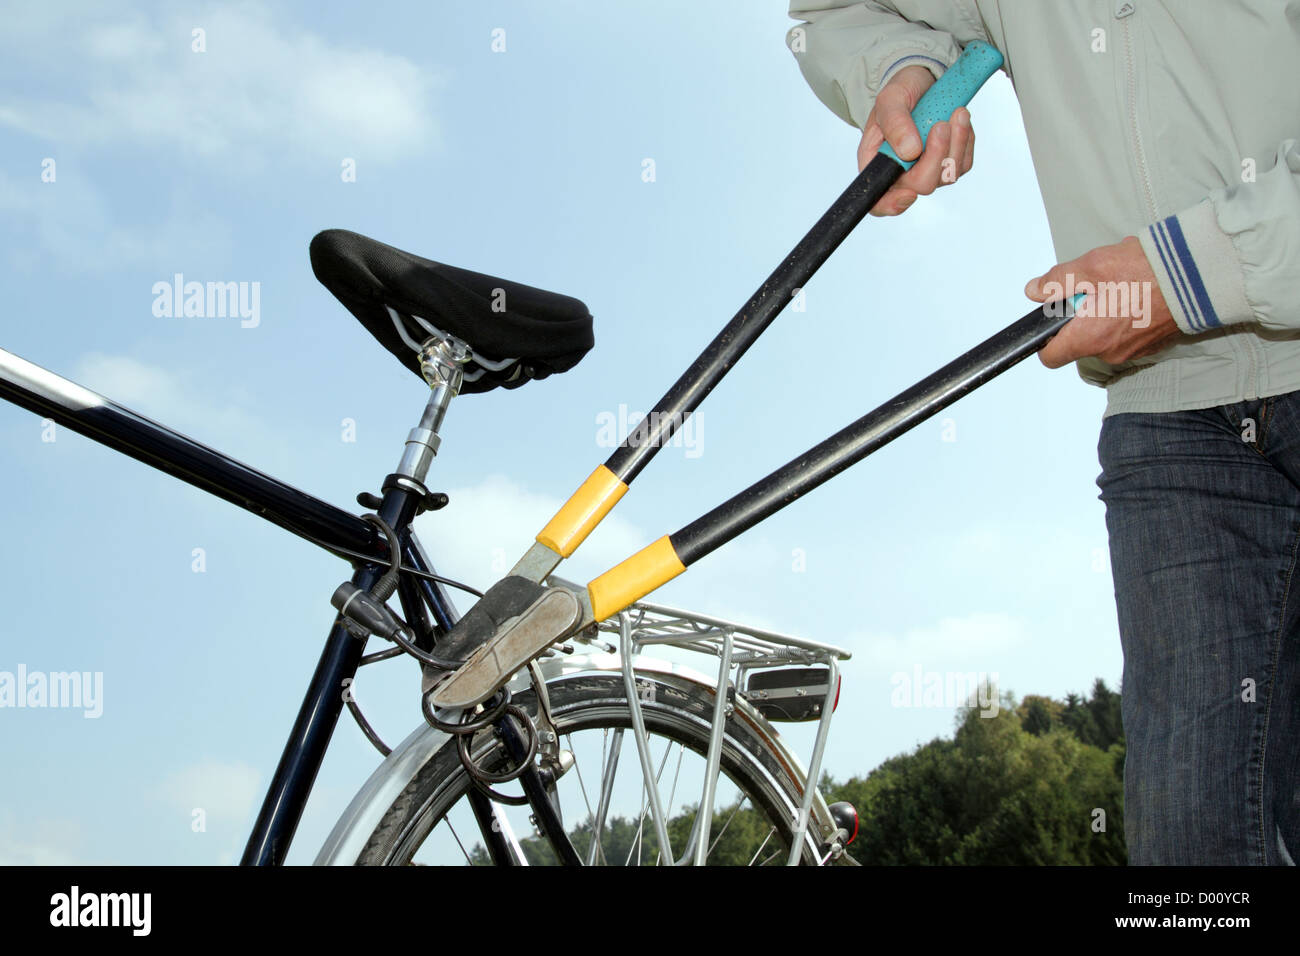 Thief stealing a Bycicle - Stock Image